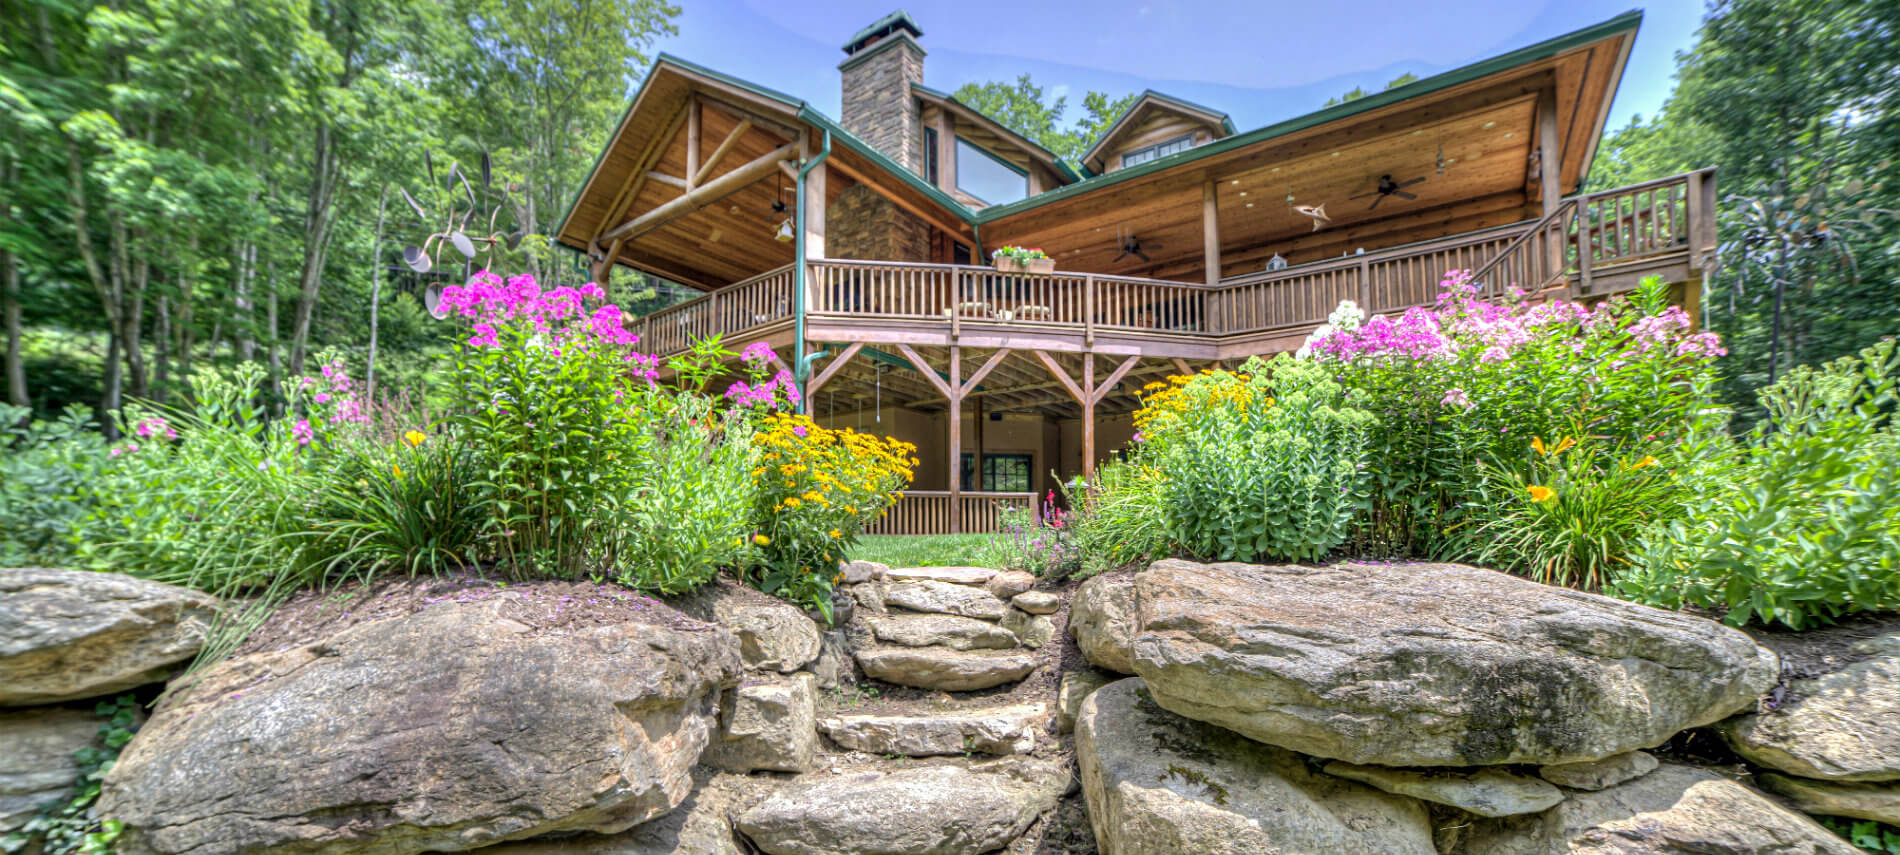 Back view of the Lodge. Large rock wall with rock steps lead up to the house. There are two beds of colorful flowers on both sides of steps. Yellow, orange and purple flowers are in beds.